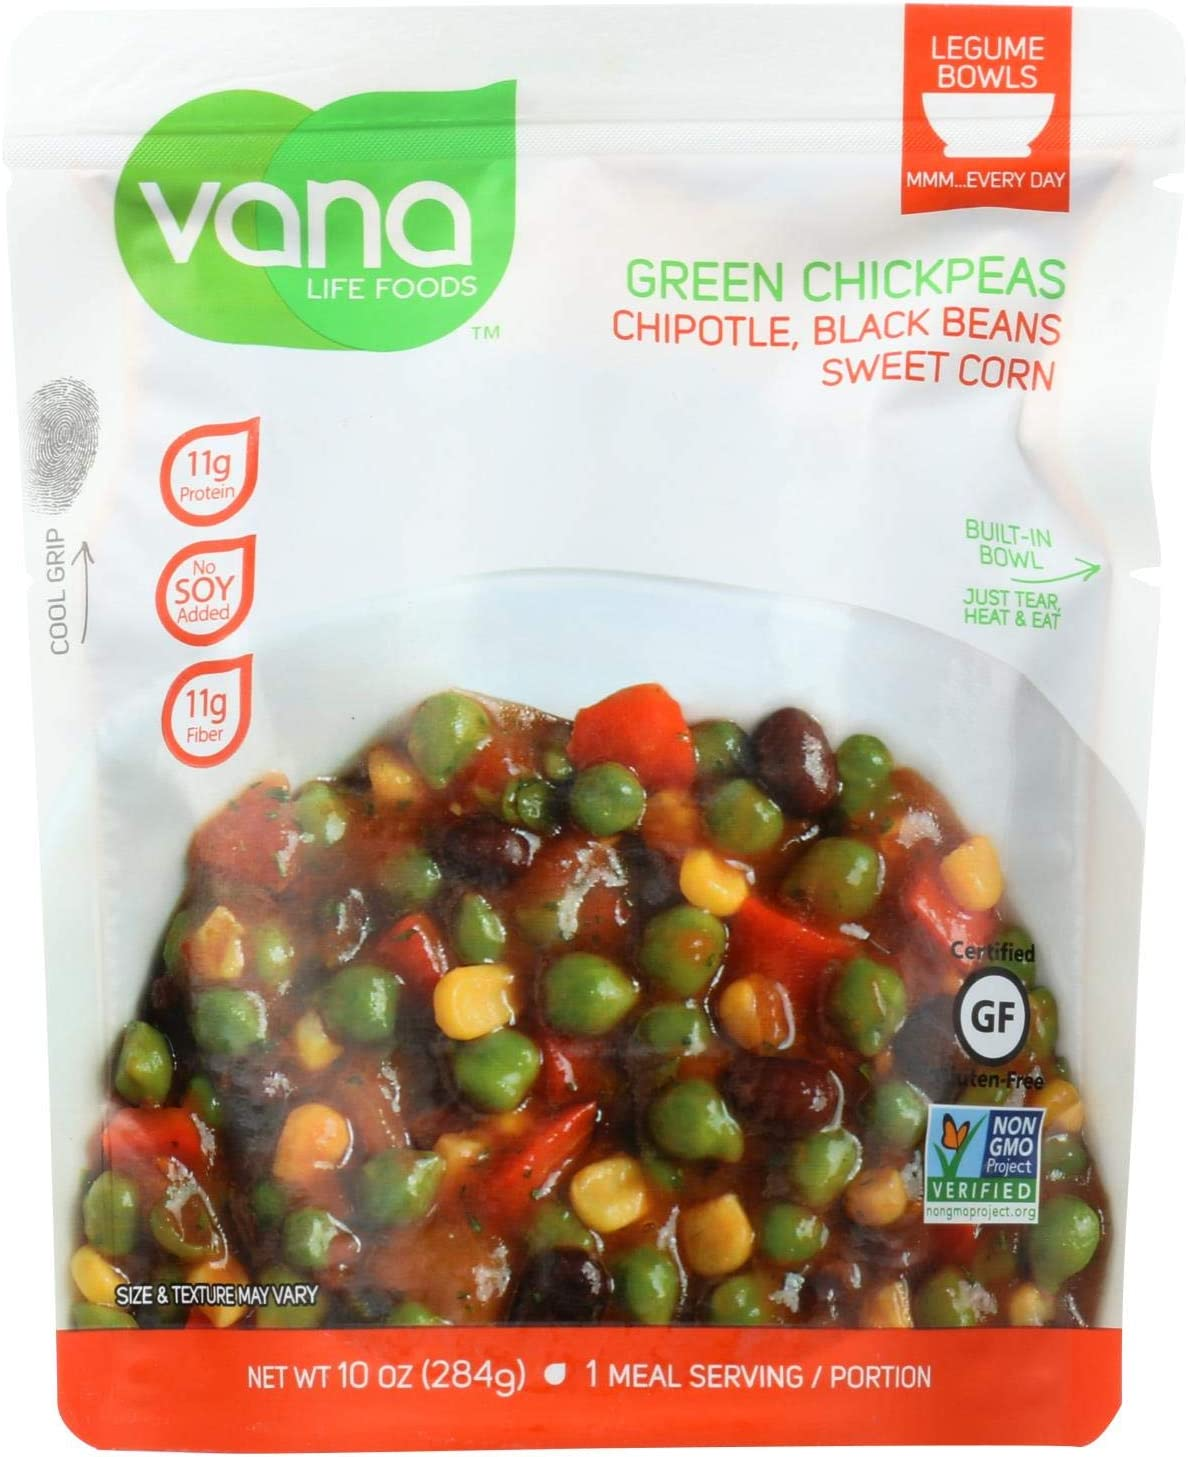 Vana Life Foods Green Chickpeas - Chipotle - Case of 6 - 10 oz.